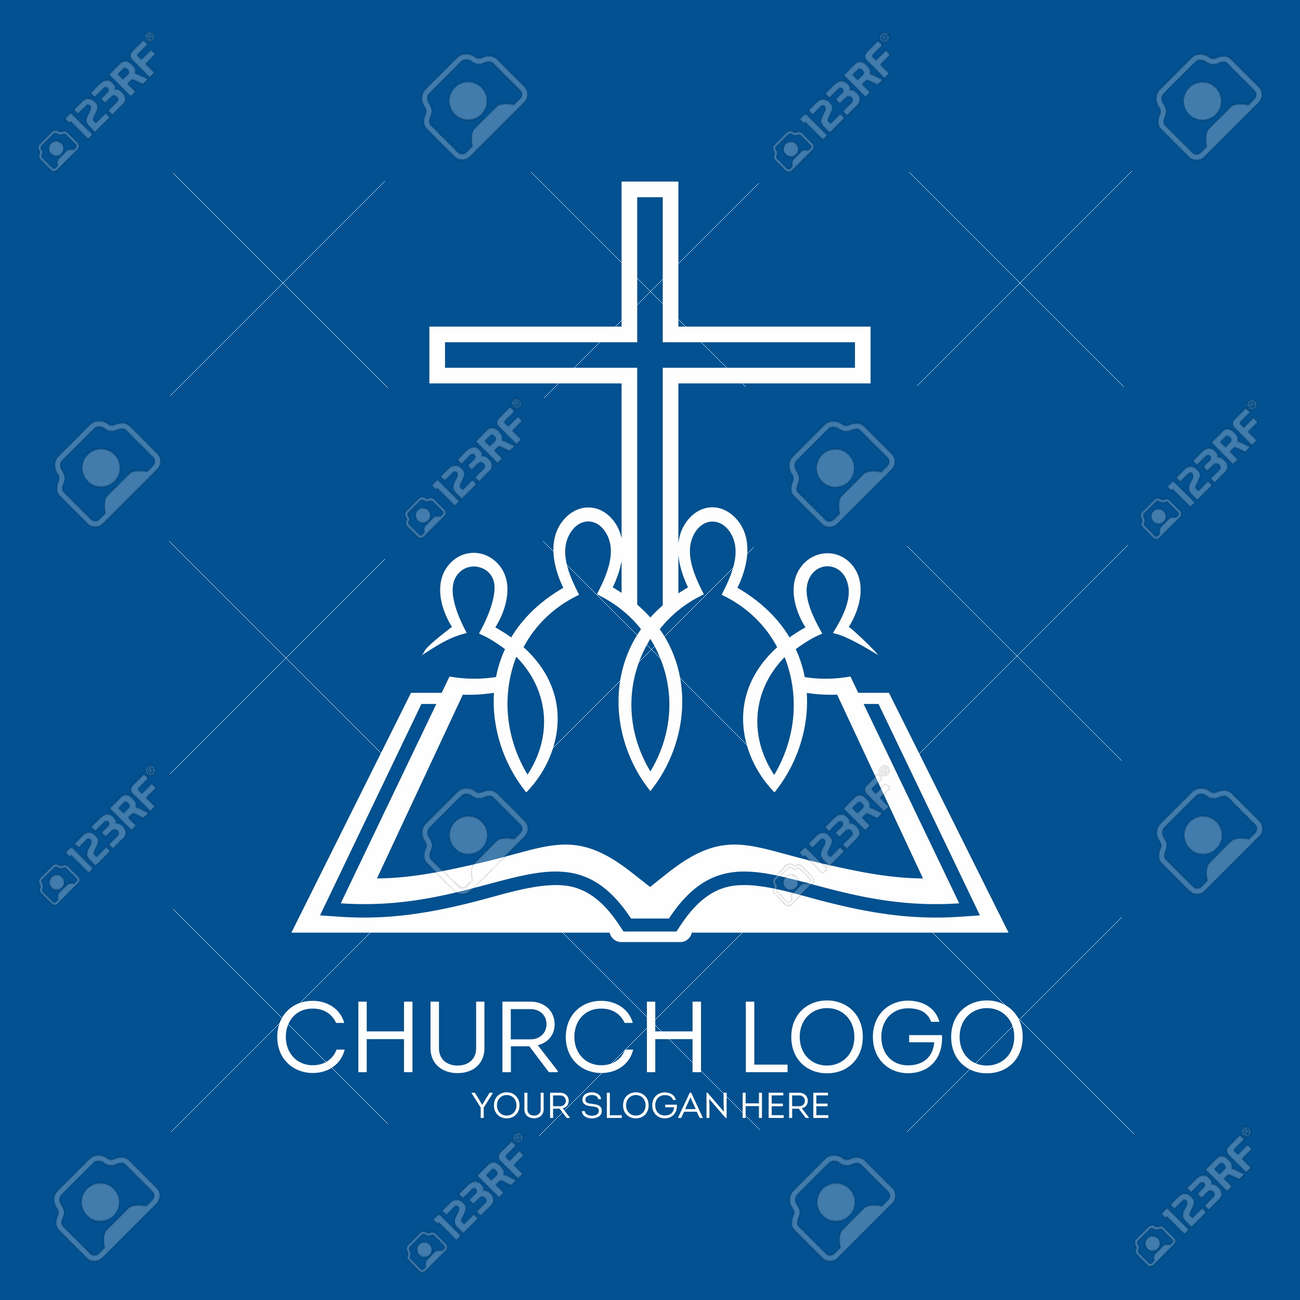 church logo united in christ group of people bible pages